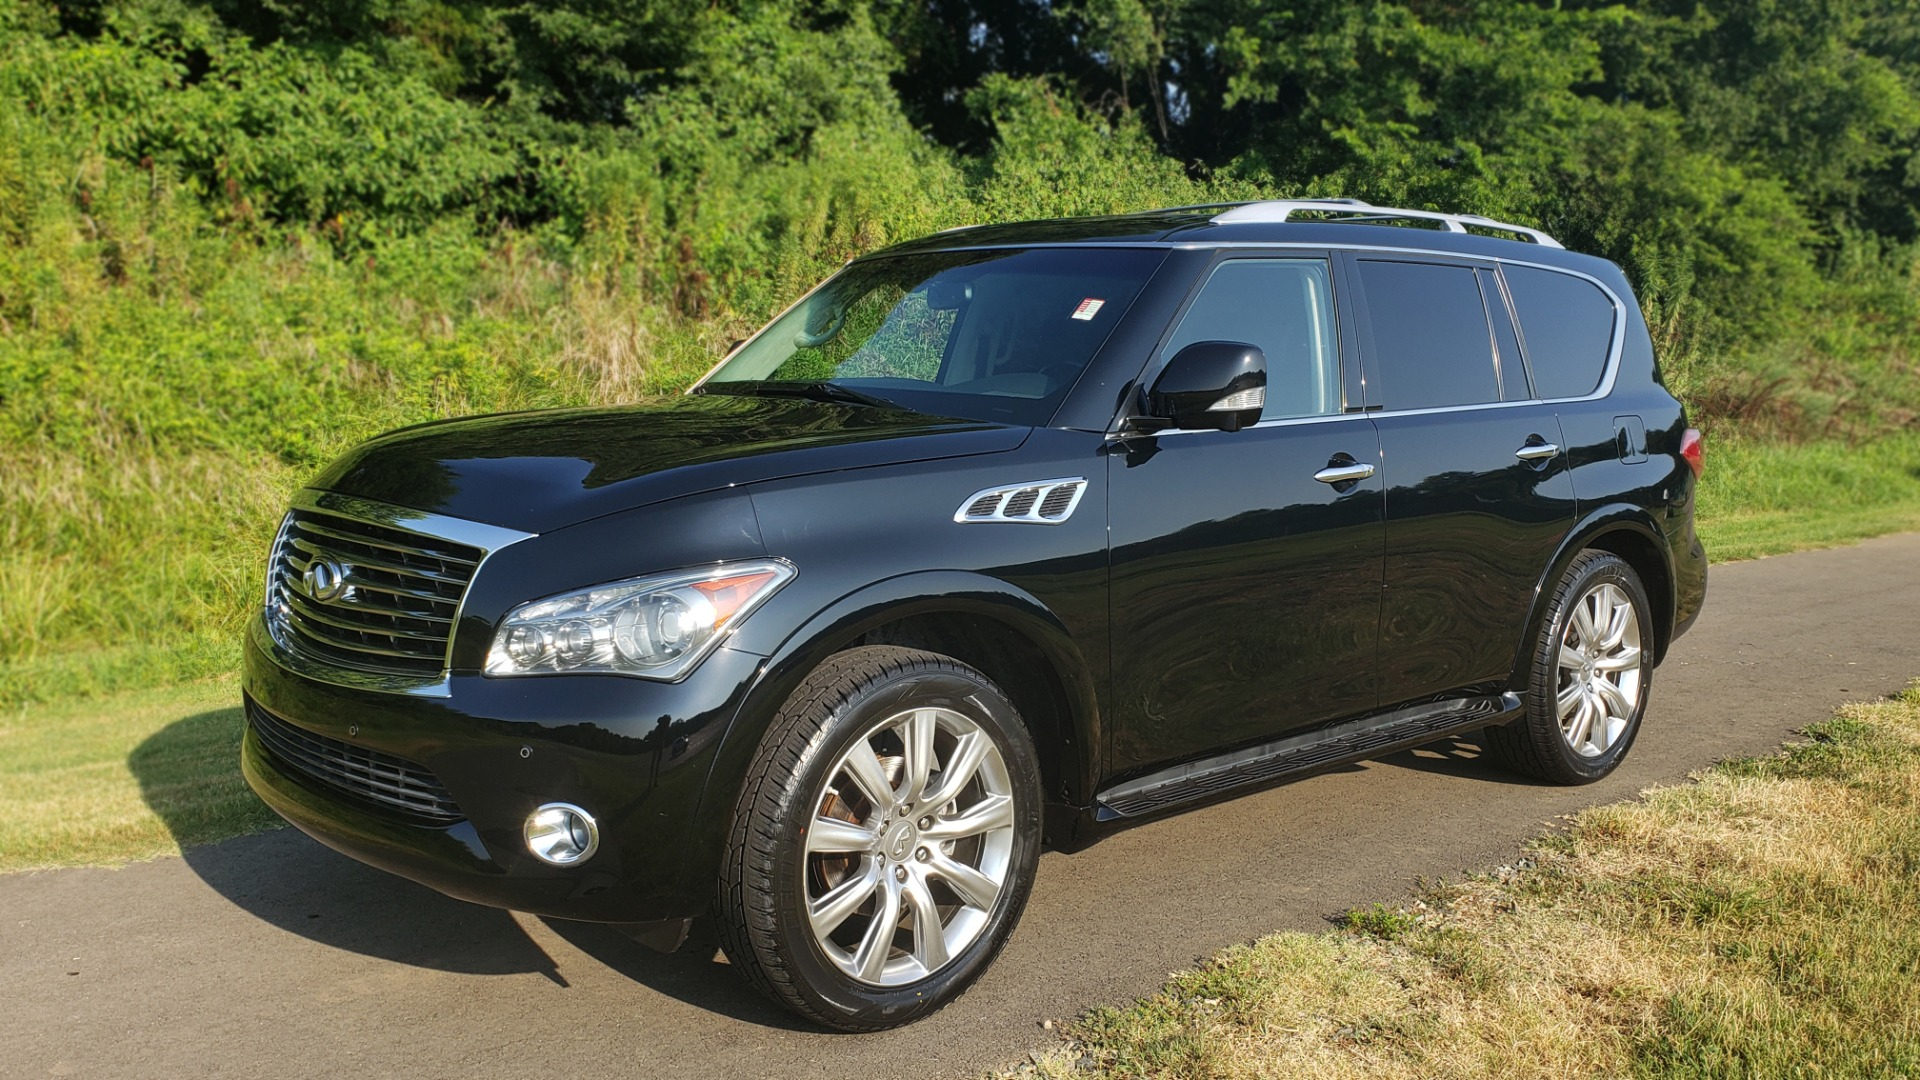 Used 2013 INFINITI QX56 NAV / SUNROOF / BOSE / THEATER / 3-ROW / REARVIEW for sale $21,495 at Formula Imports in Charlotte NC 28227 4